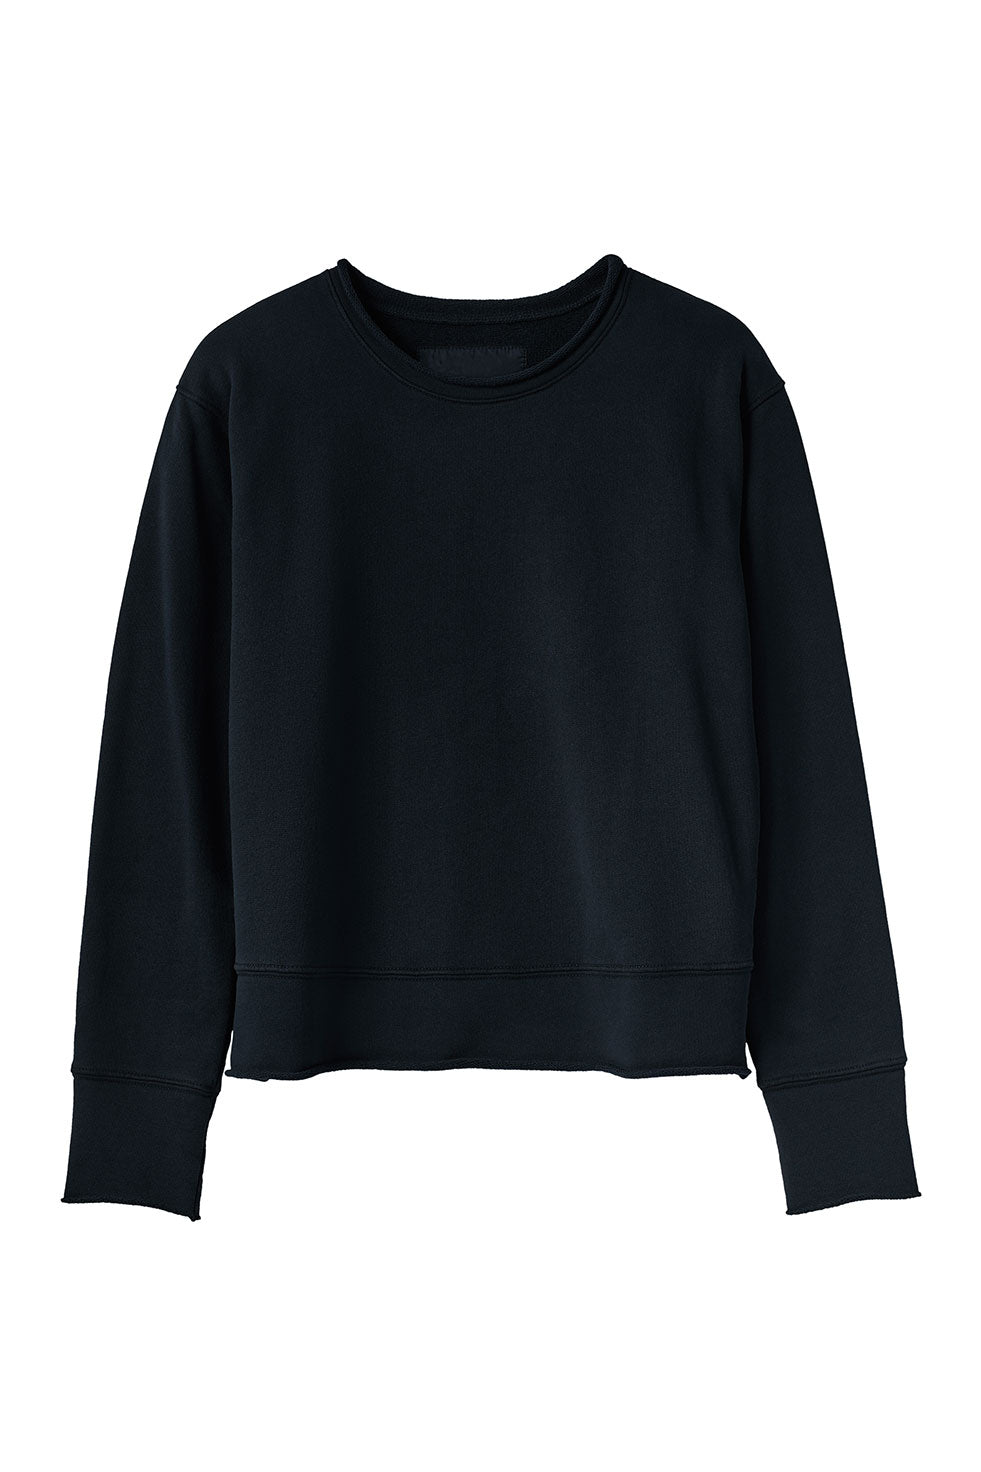 Boyfriend Crew Neck Sweatshirt